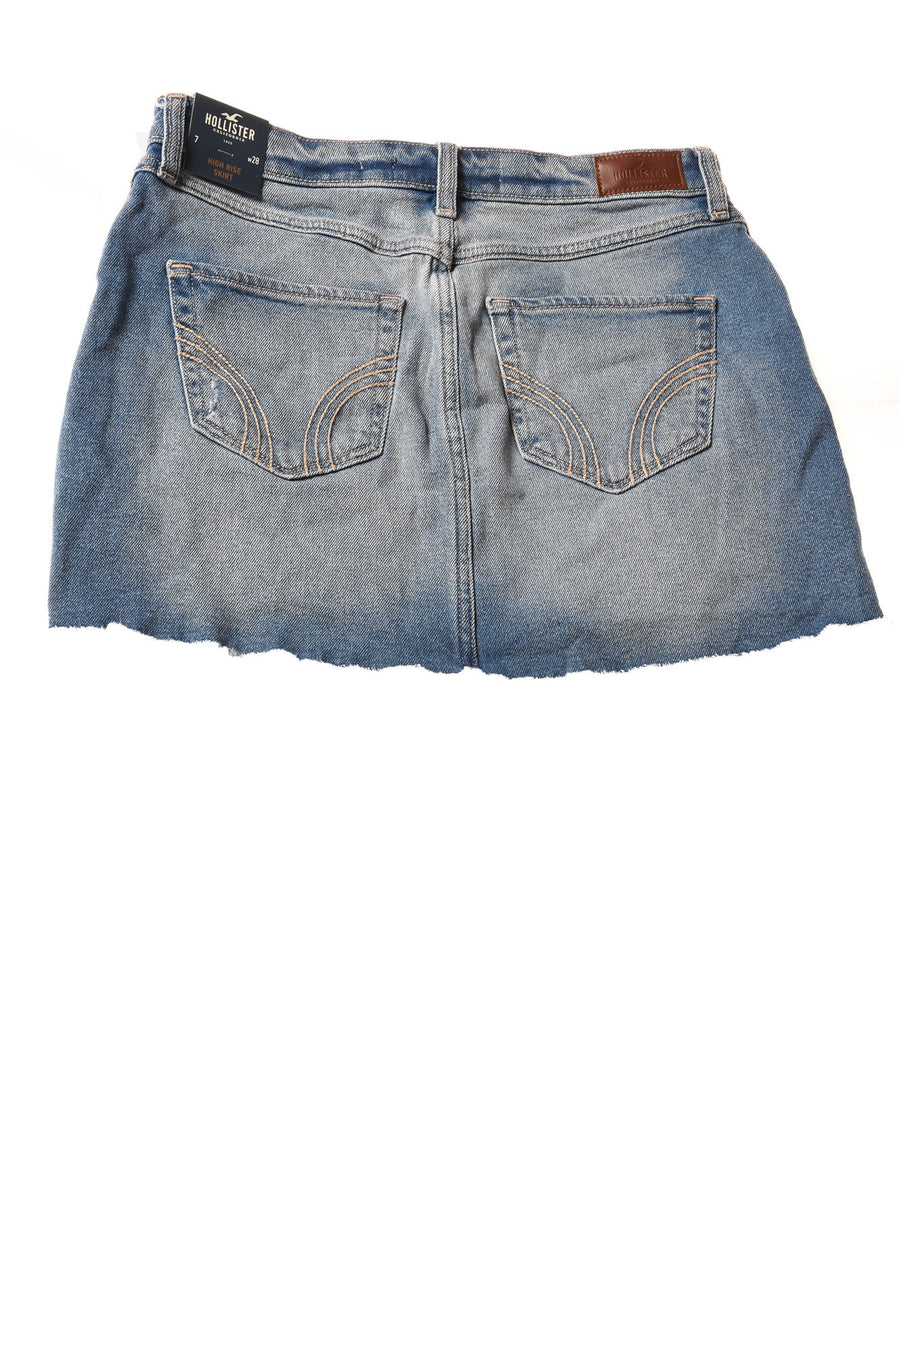 Women's Skirt By Hollister